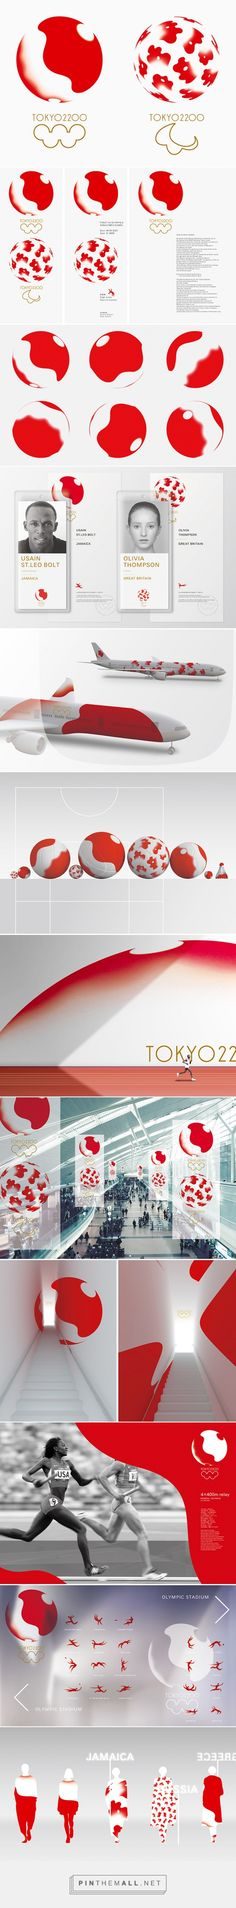 kenya hara reveals logo proposal for the 2020 tokyo olympics... - a grouped images picture - Pin Them All